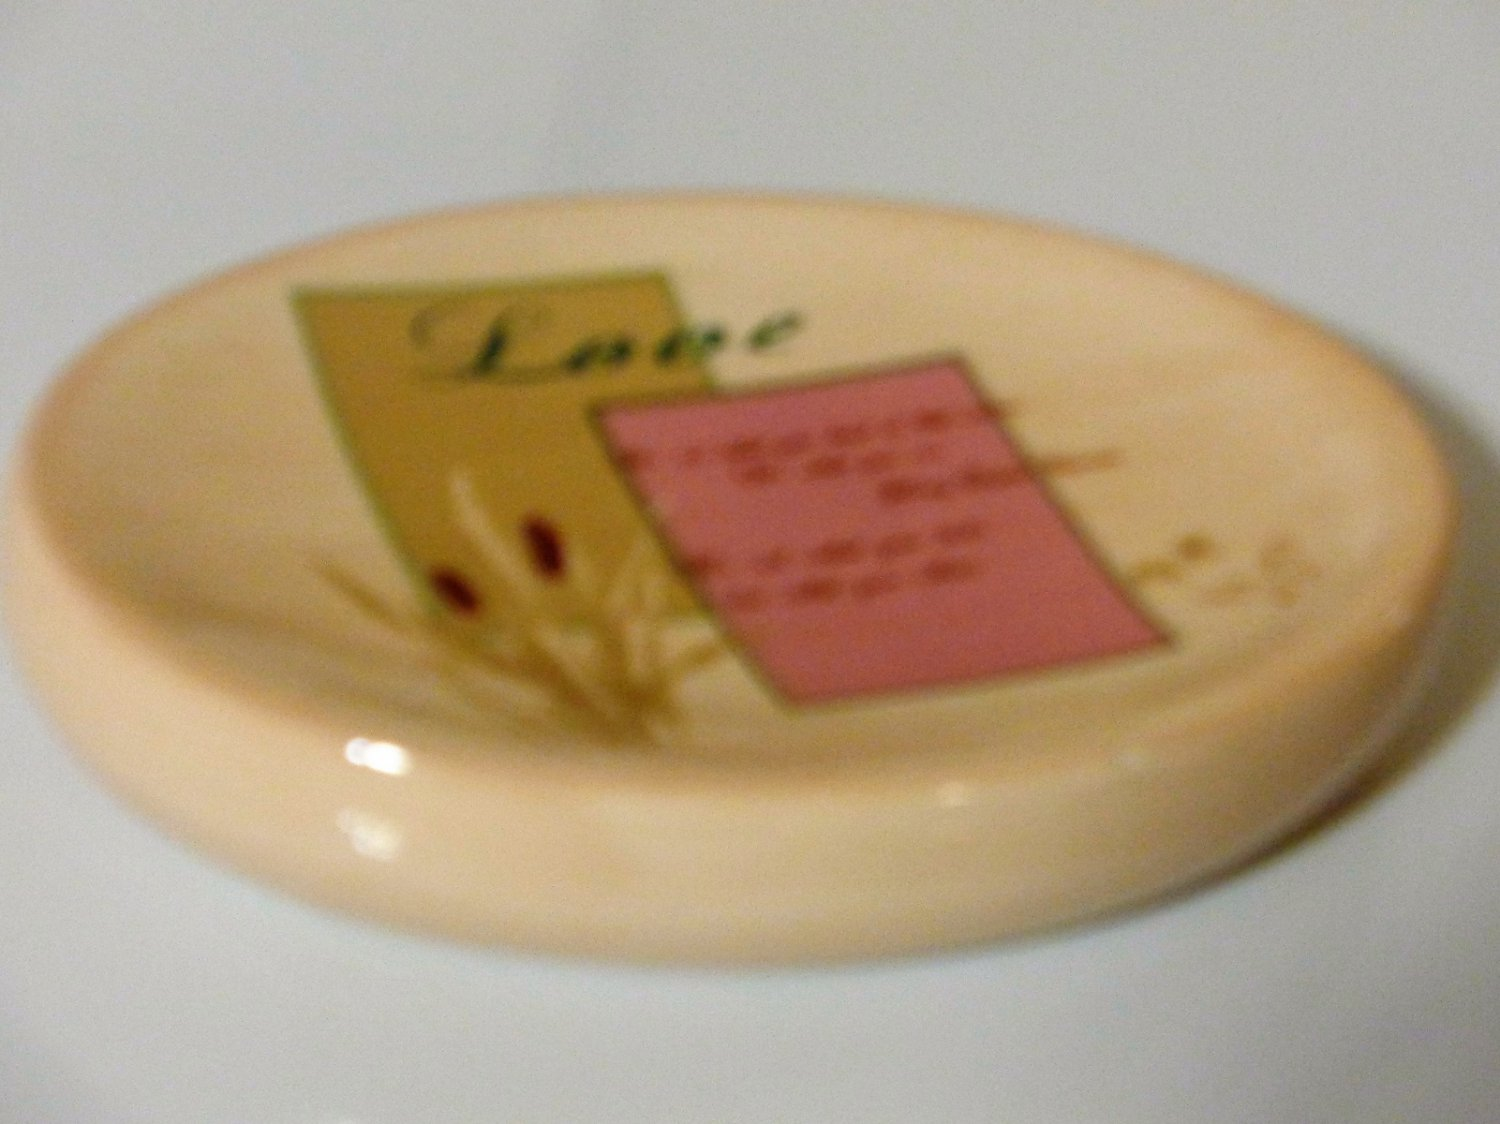 Floral Inspirational Love Soap Dish Popular Bath